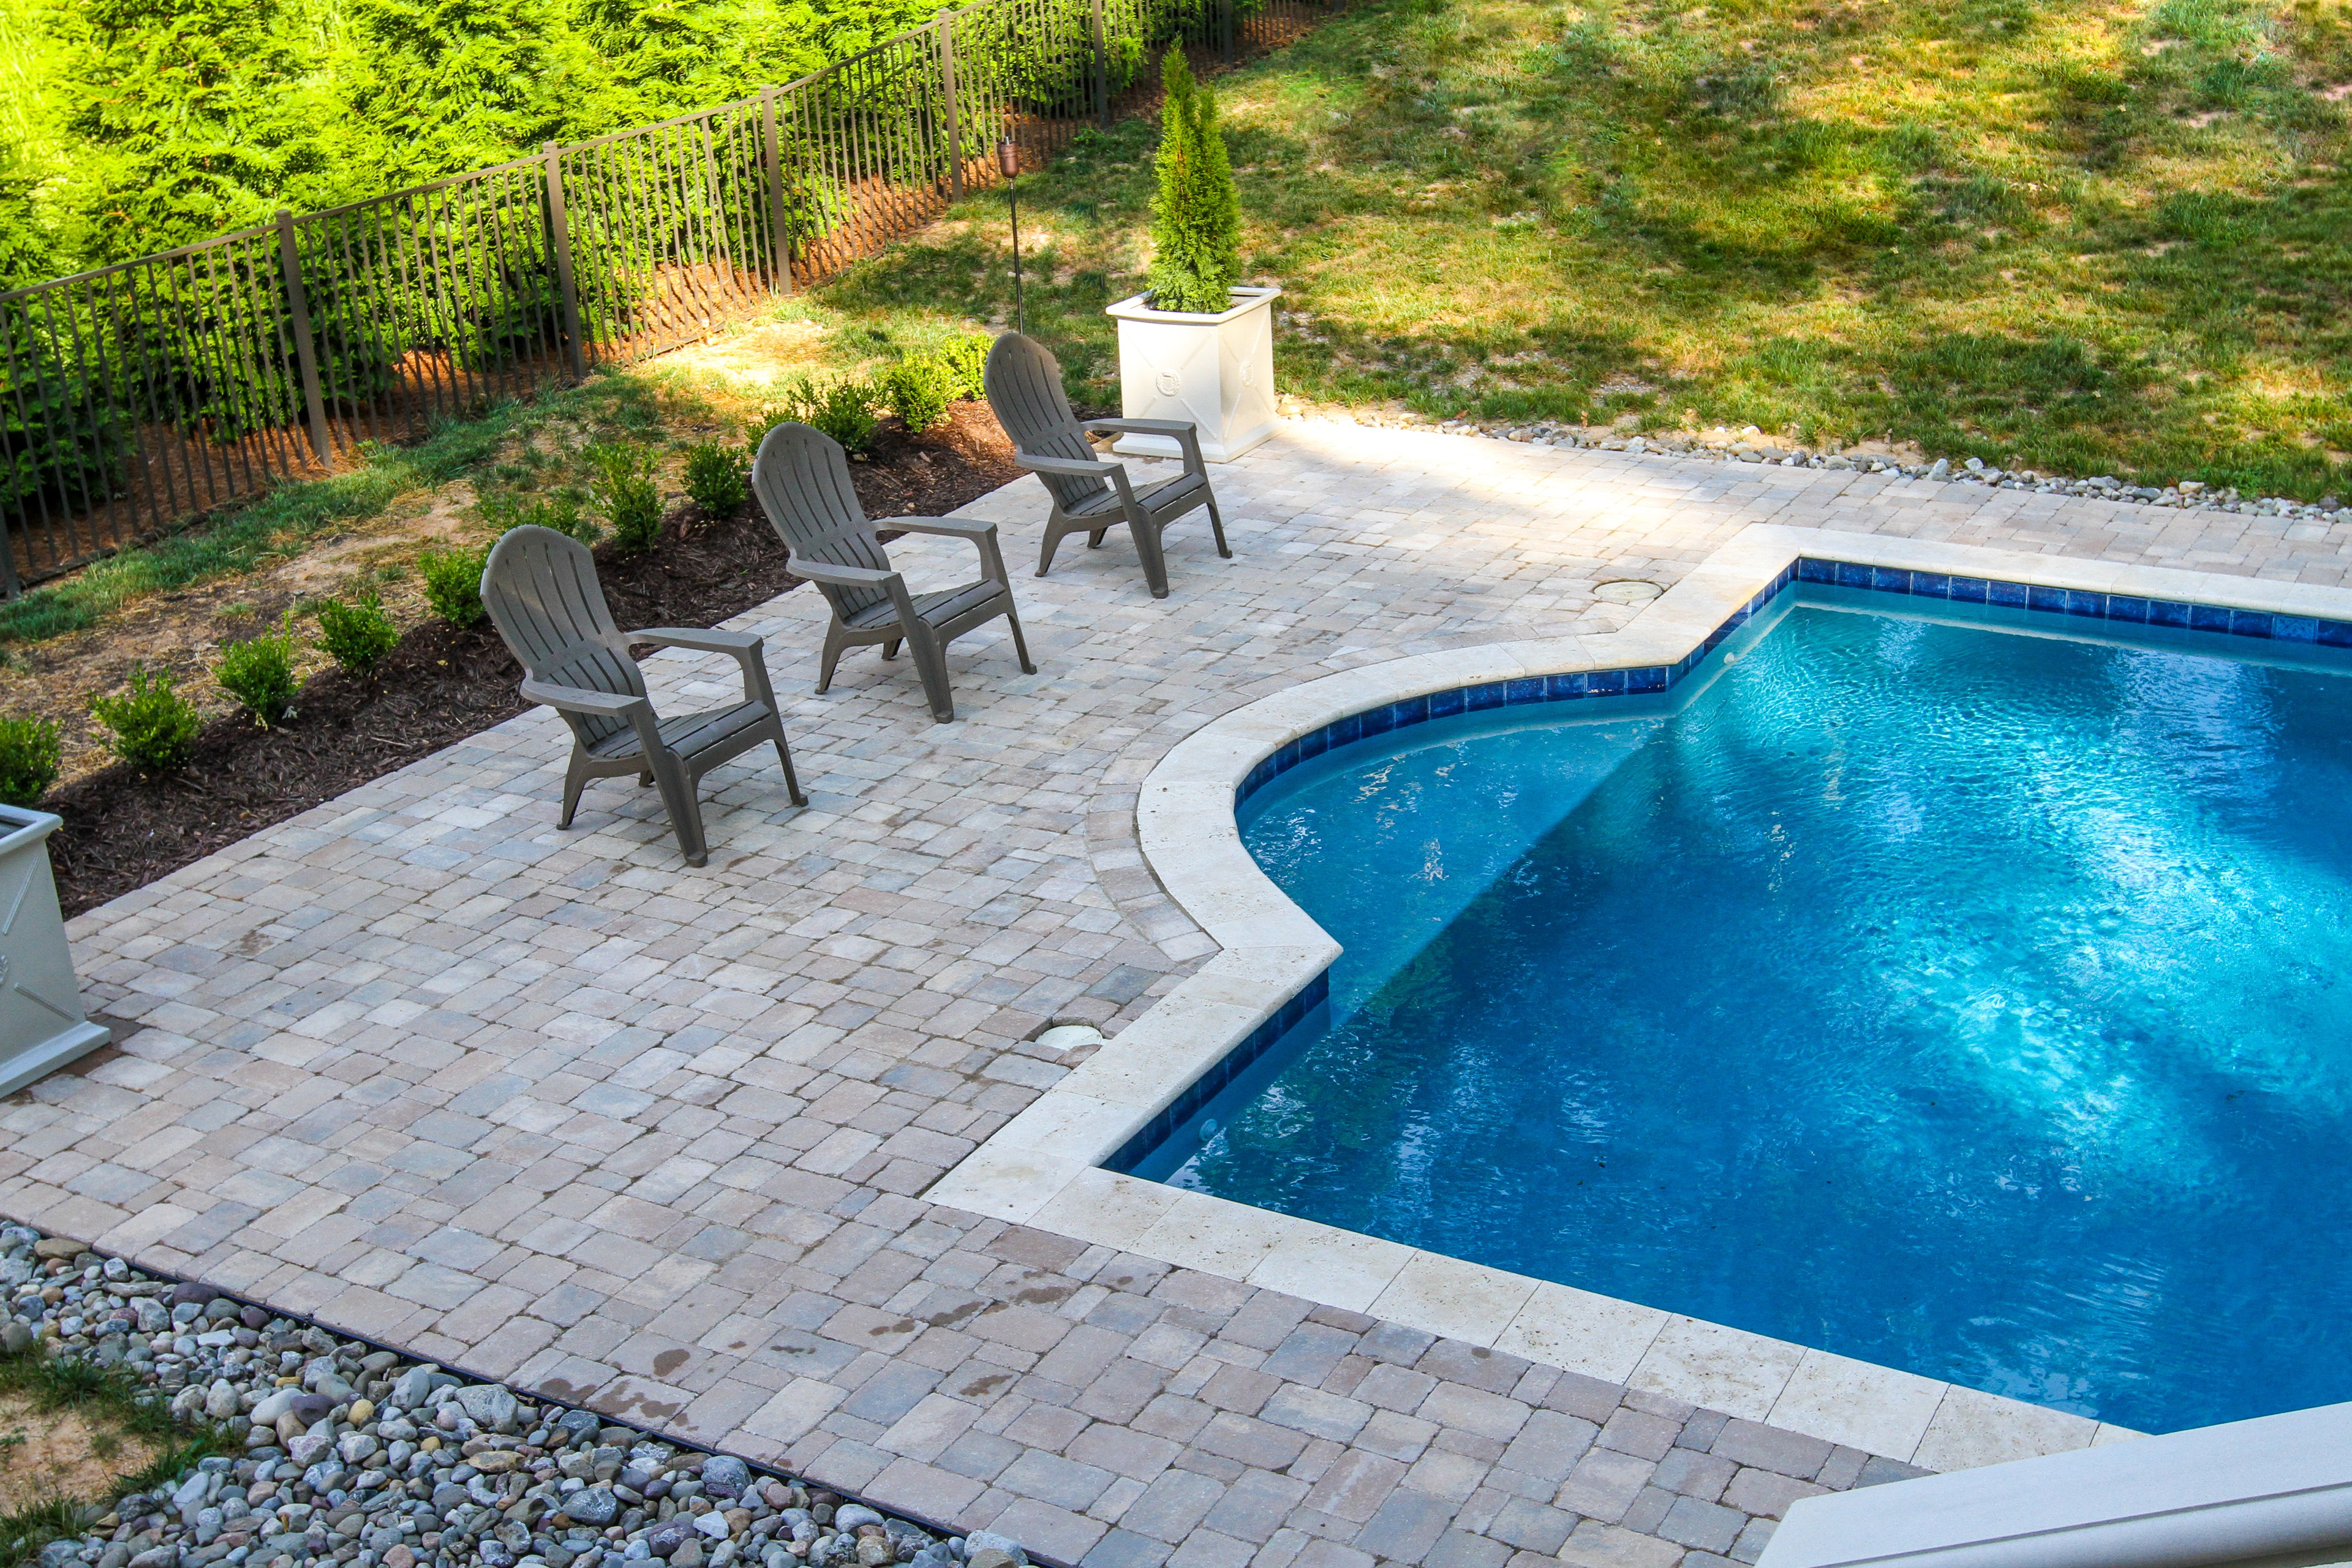 AFTER WITH PAVERS PUT IN:  Pool with firepit, english garden, large patio areas